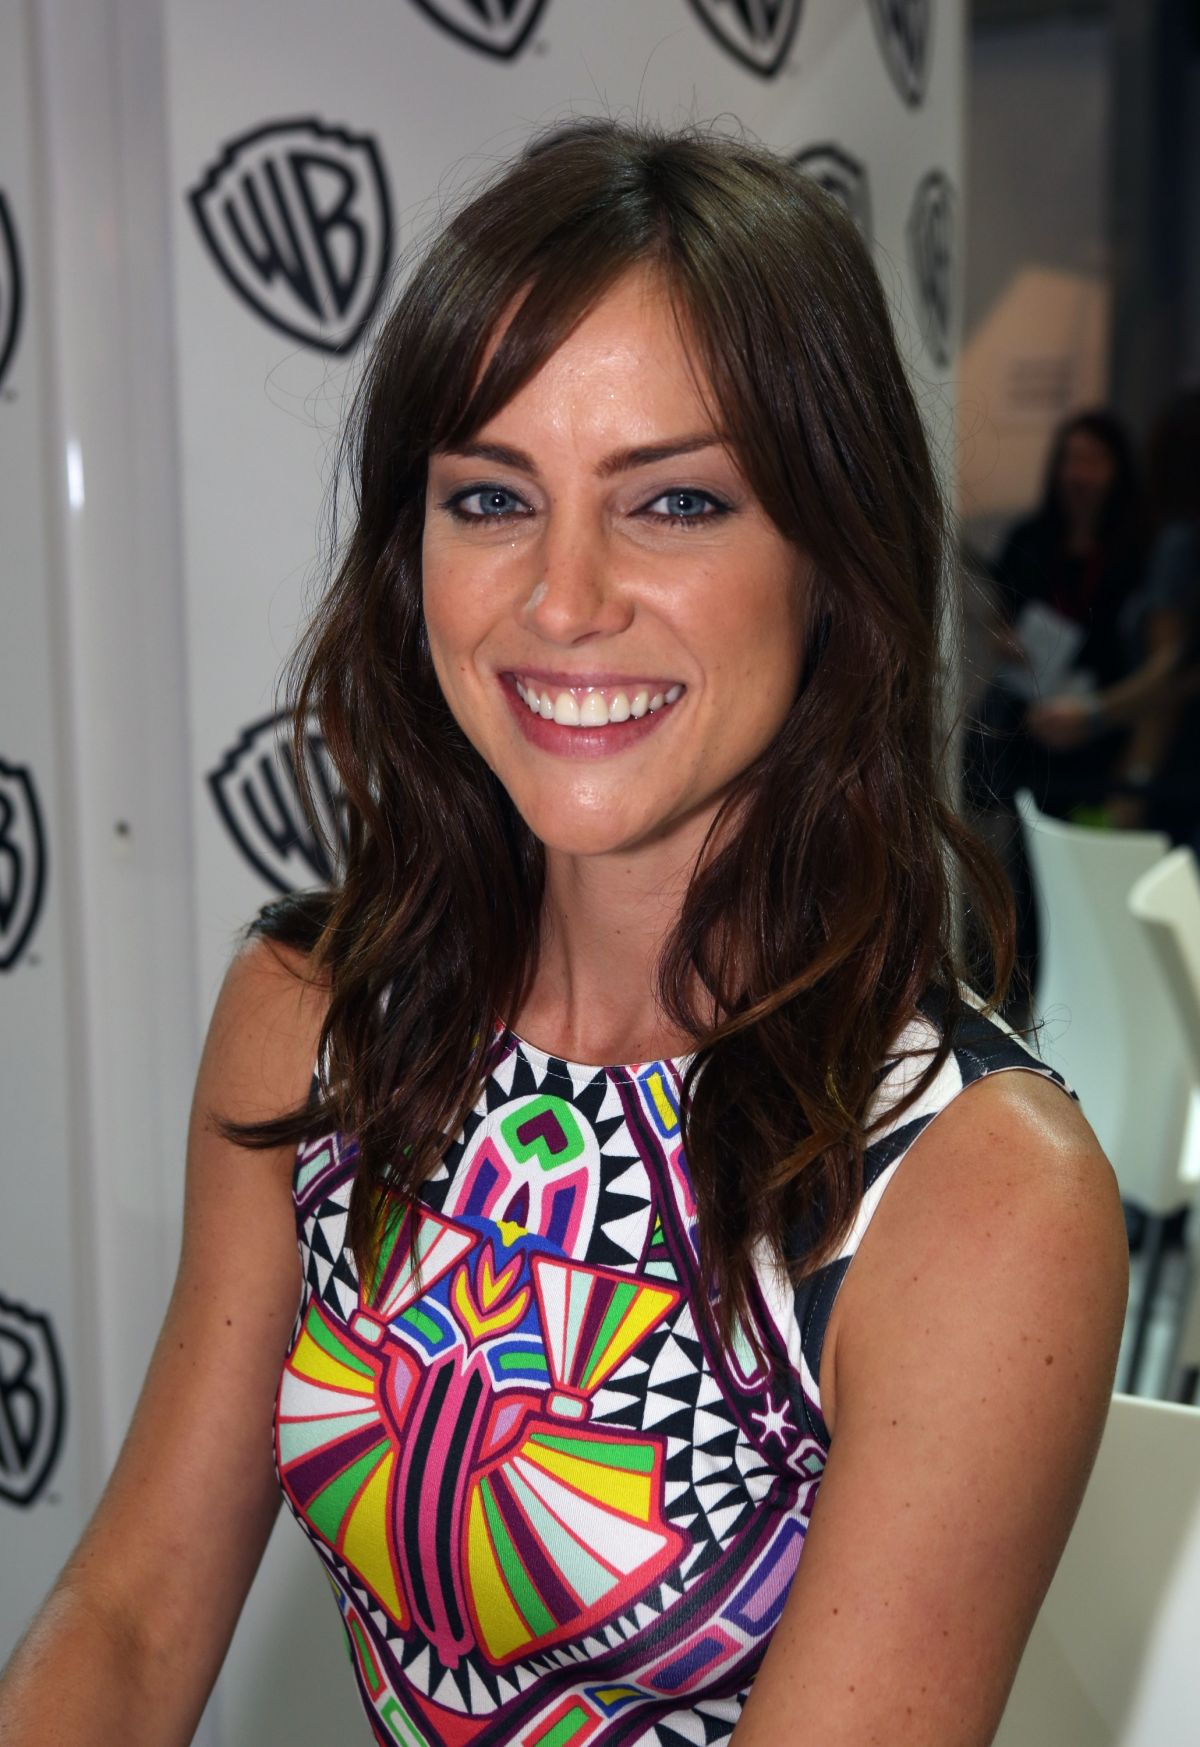 JESSICA STROUP at Warner Bros Signing Booth at Comic-con